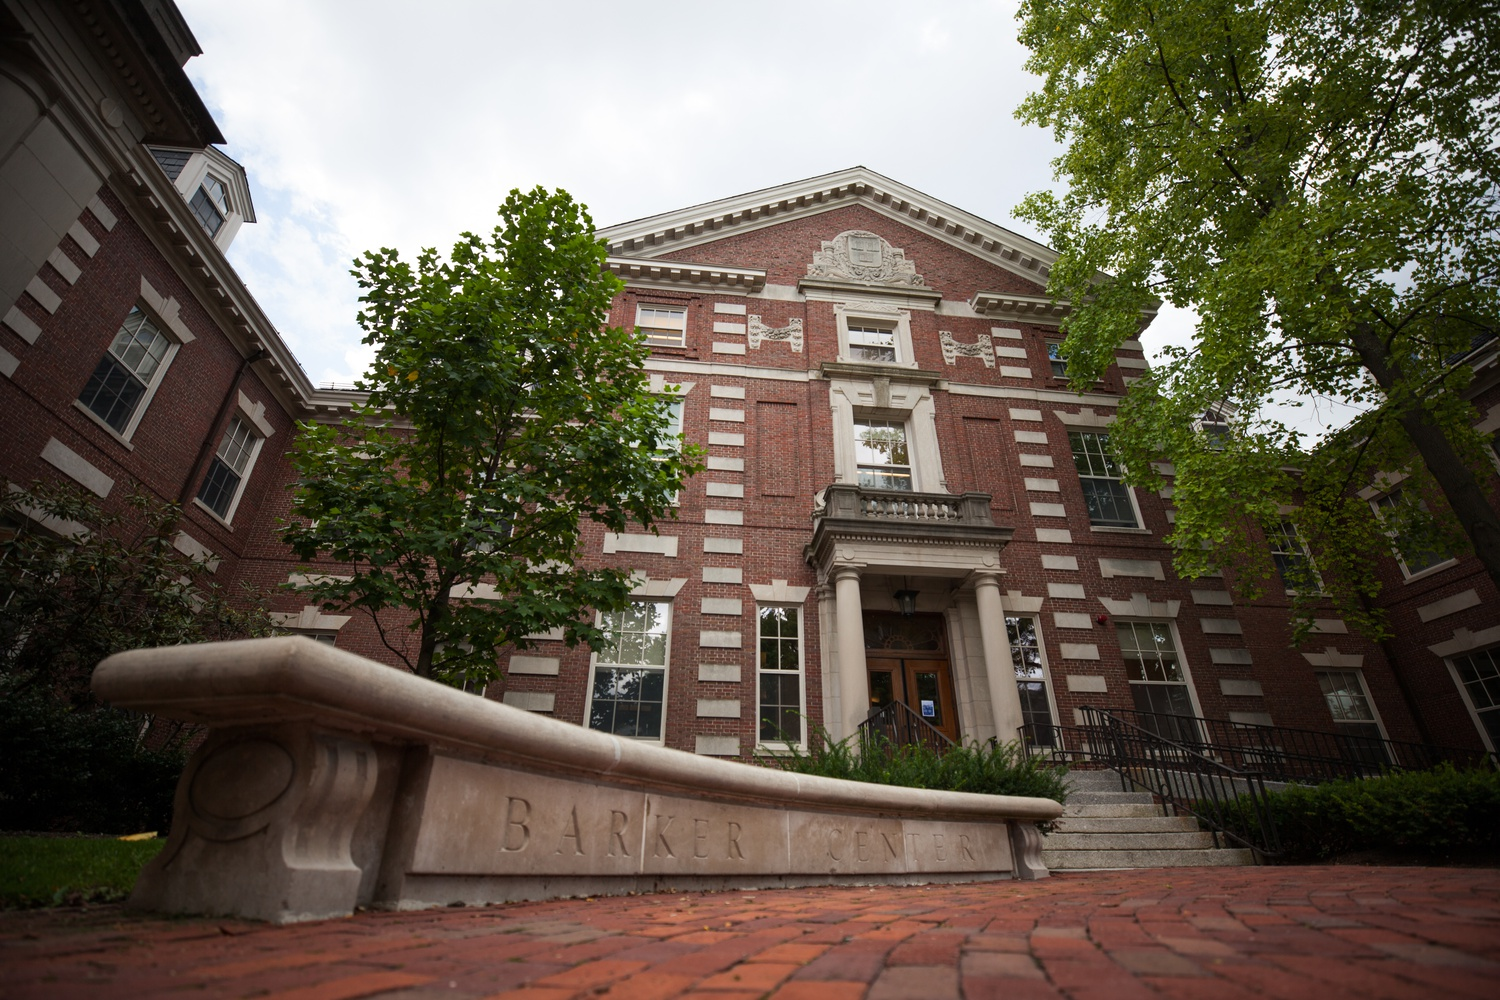 The Barker Center houses a host of departments, including History and Literature, African and African American Studies, and English.